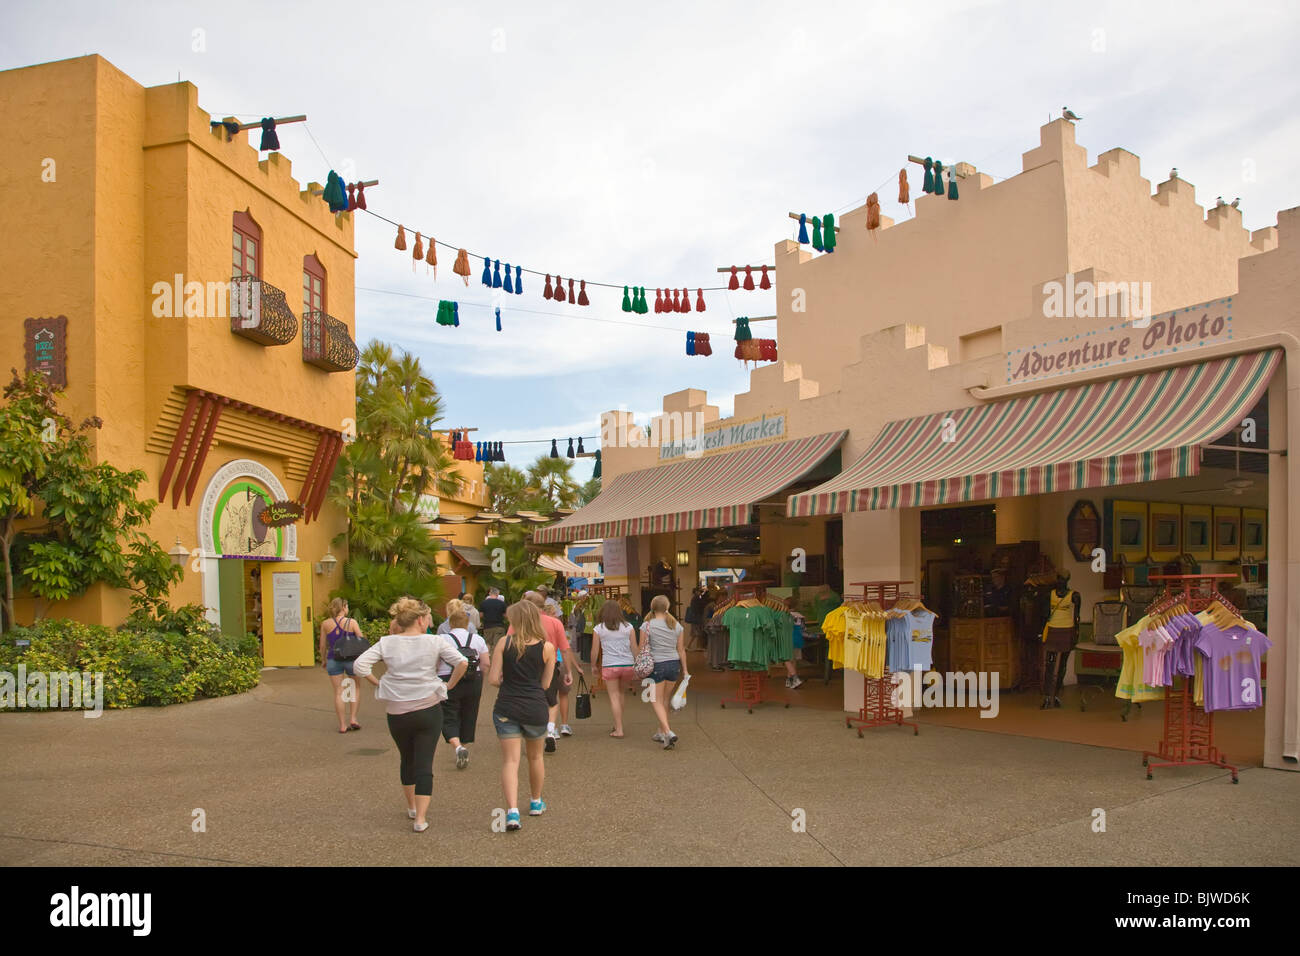 Busch Gardens Stock Photos & Busch Gardens Stock Images - Alamy